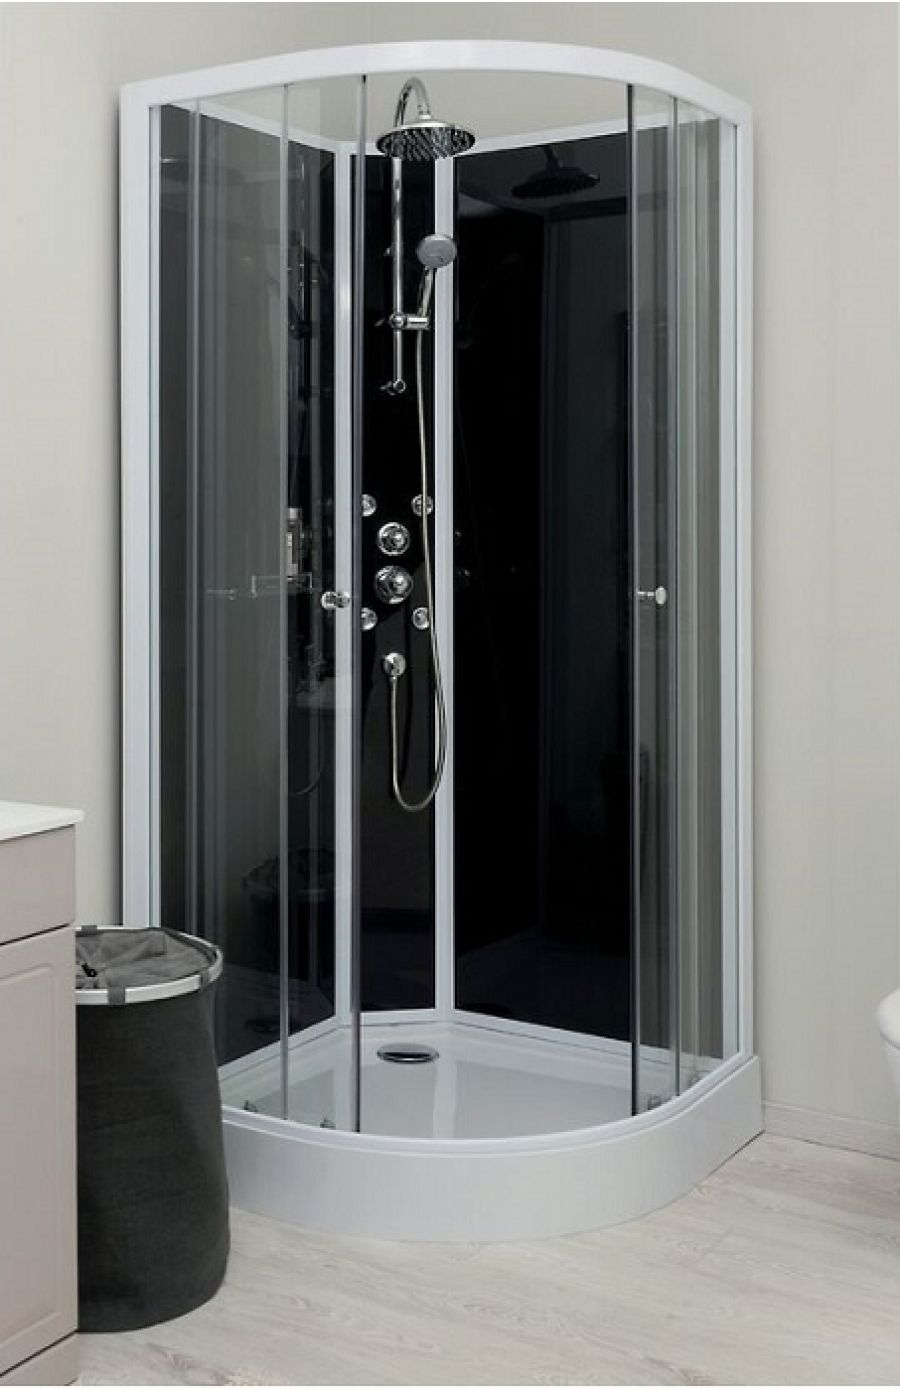 cabine de douche hydro gena grise sans silicone 80 meuble de salle de bain. Black Bedroom Furniture Sets. Home Design Ideas